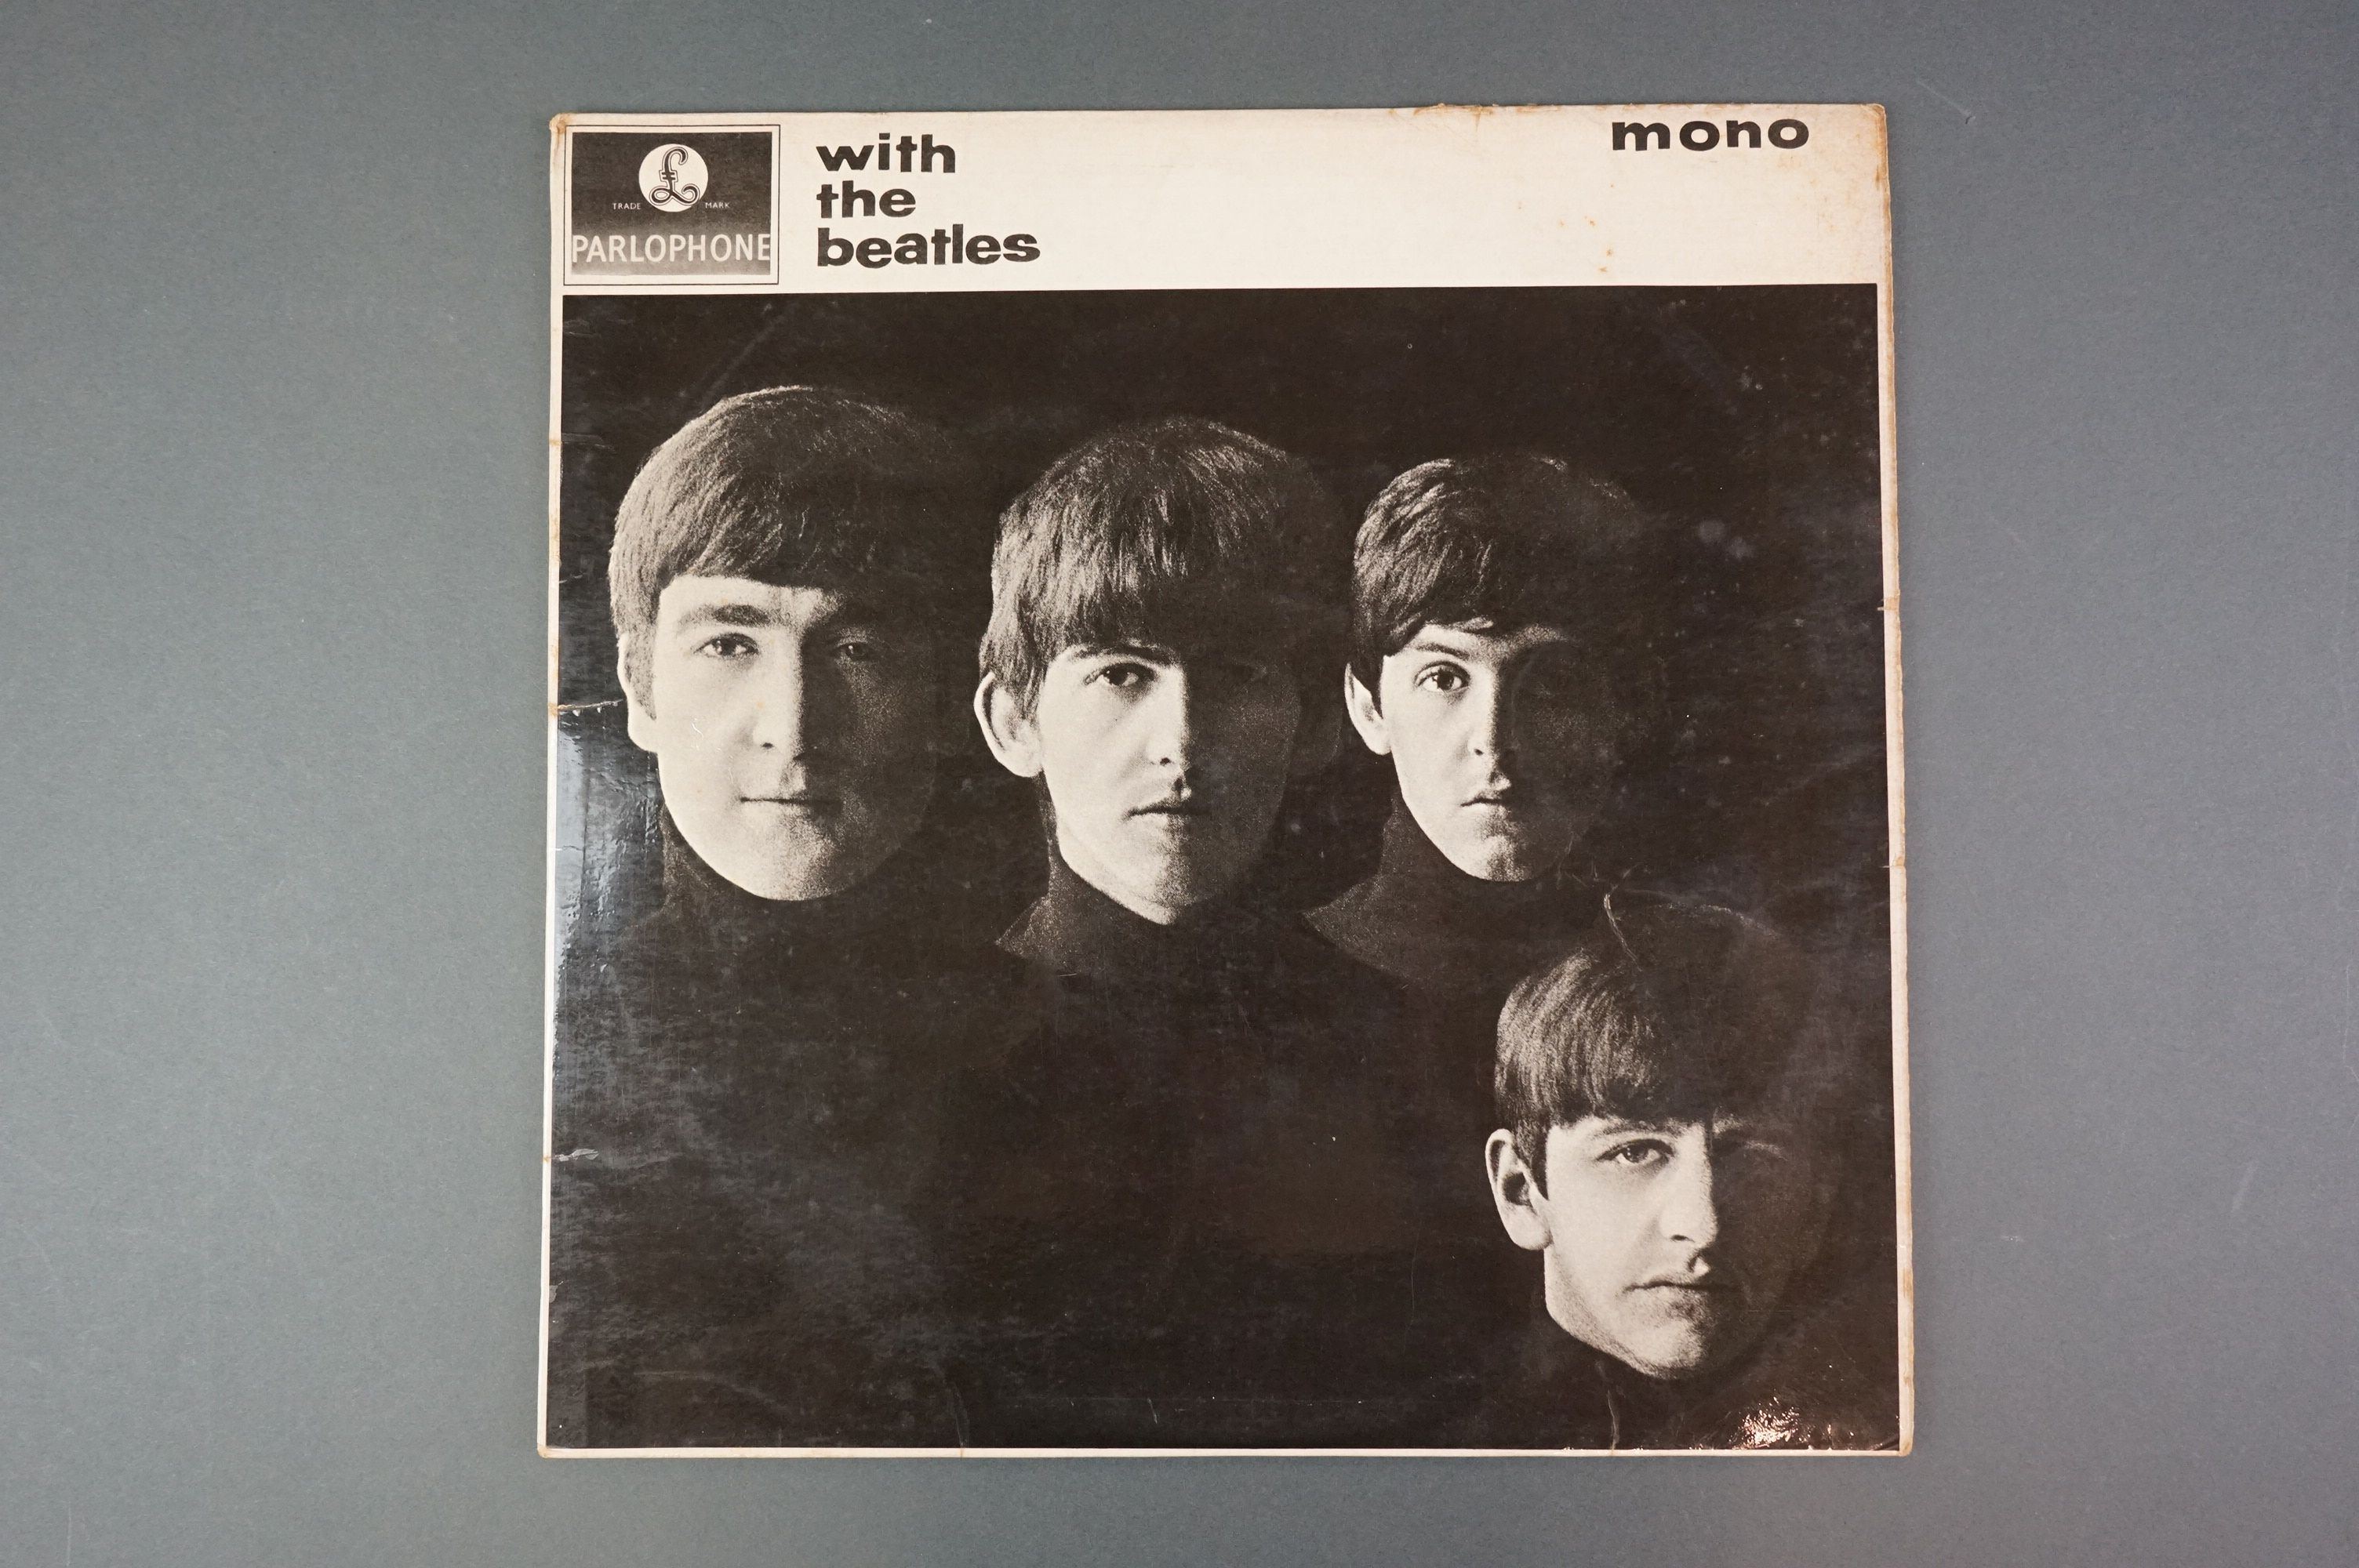 Vinyl - The Beatles With The Beatles x 2 copies to include PMC 1206, The Parlophone Co Ltd to - Image 2 of 6